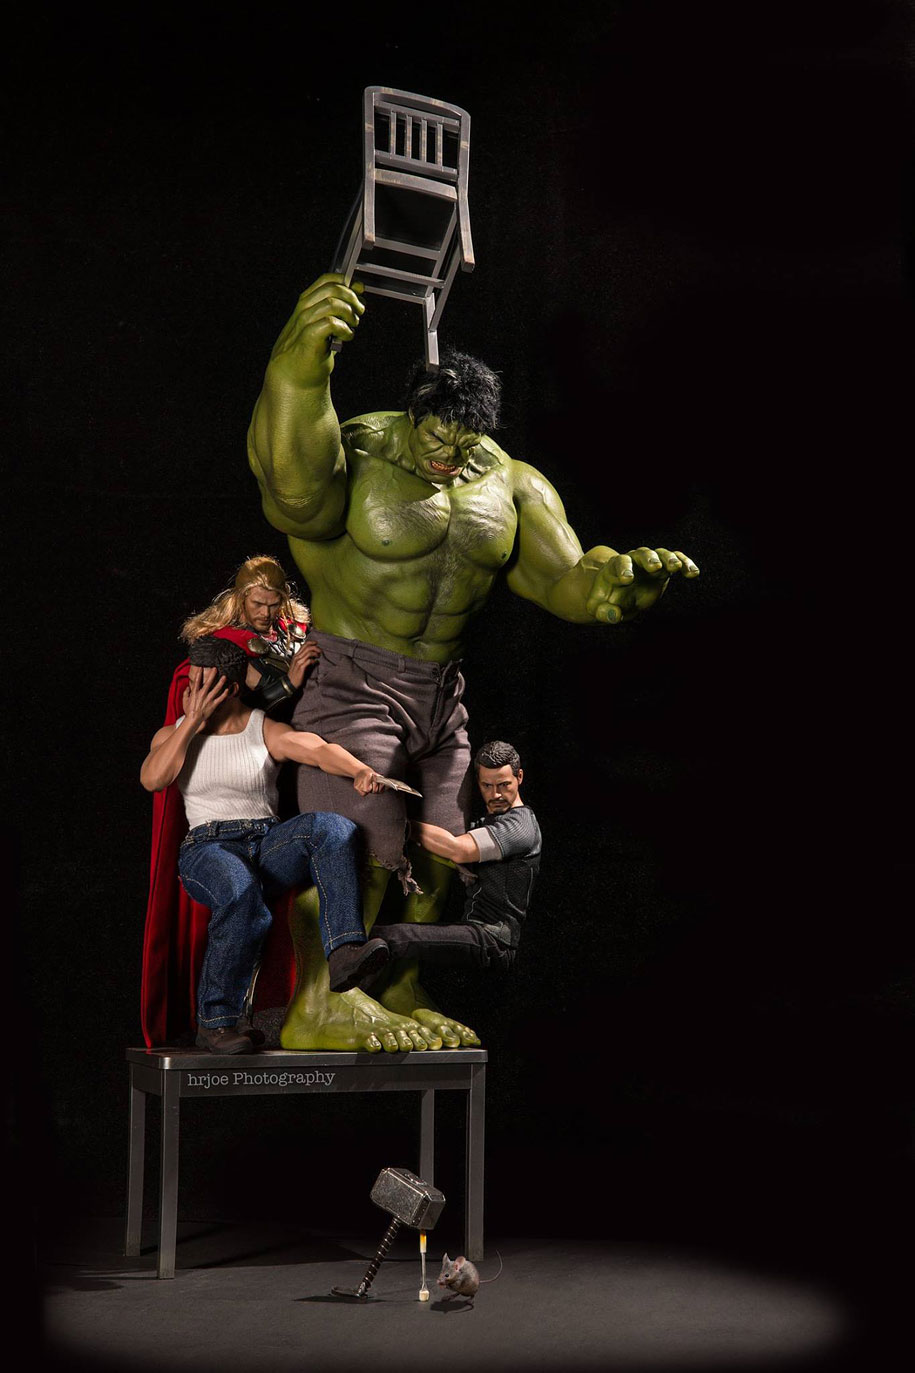 funny-marvel-superhero-action-figure-hrjoe-6